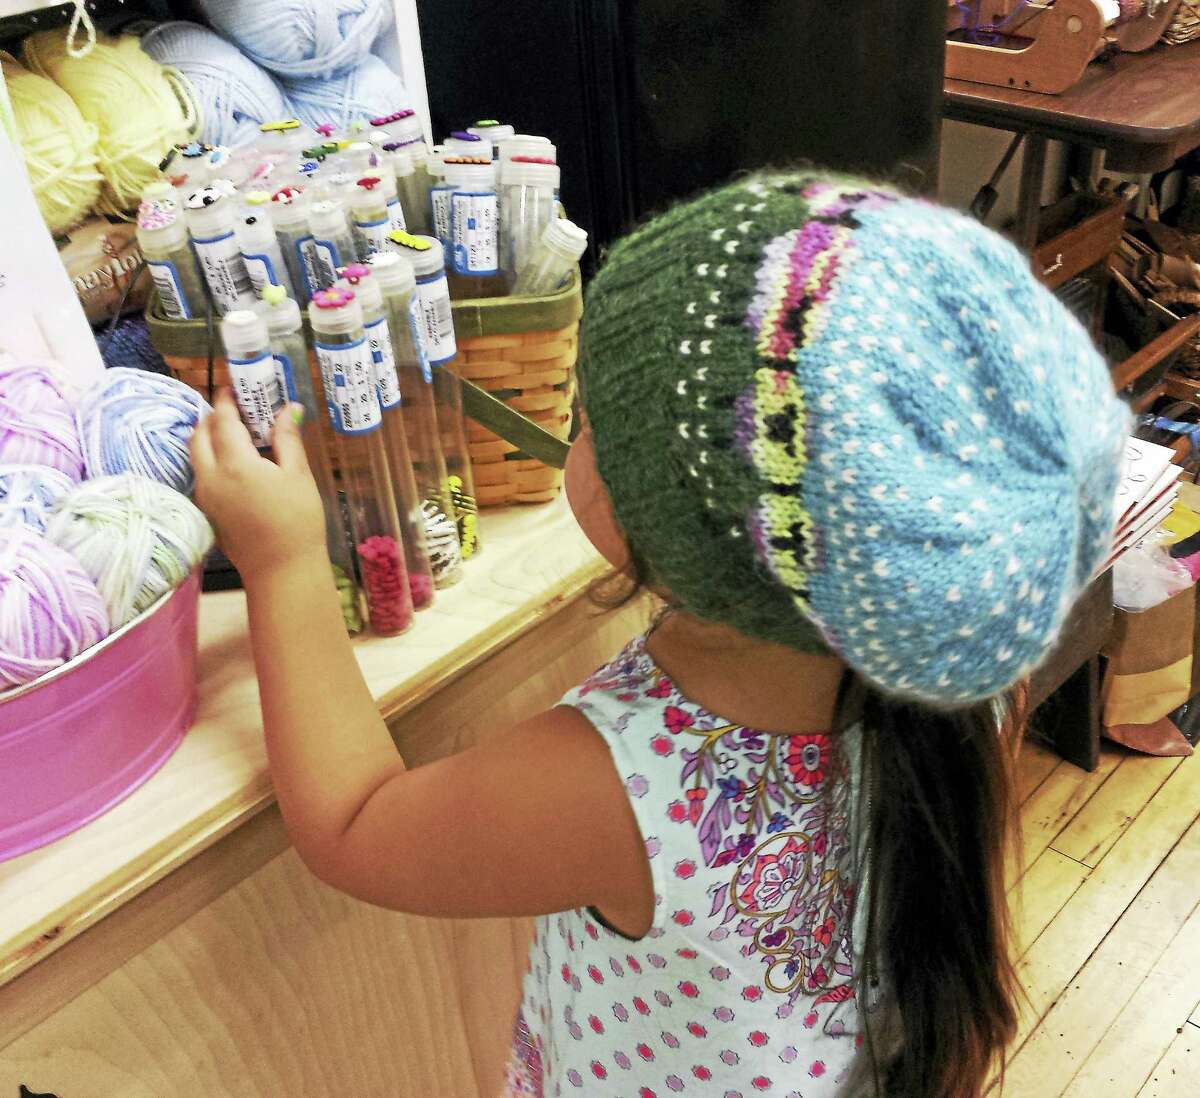 Photo by Ginger BalchGranddaughter Aariana wears a sheep hat while arranging buttons.